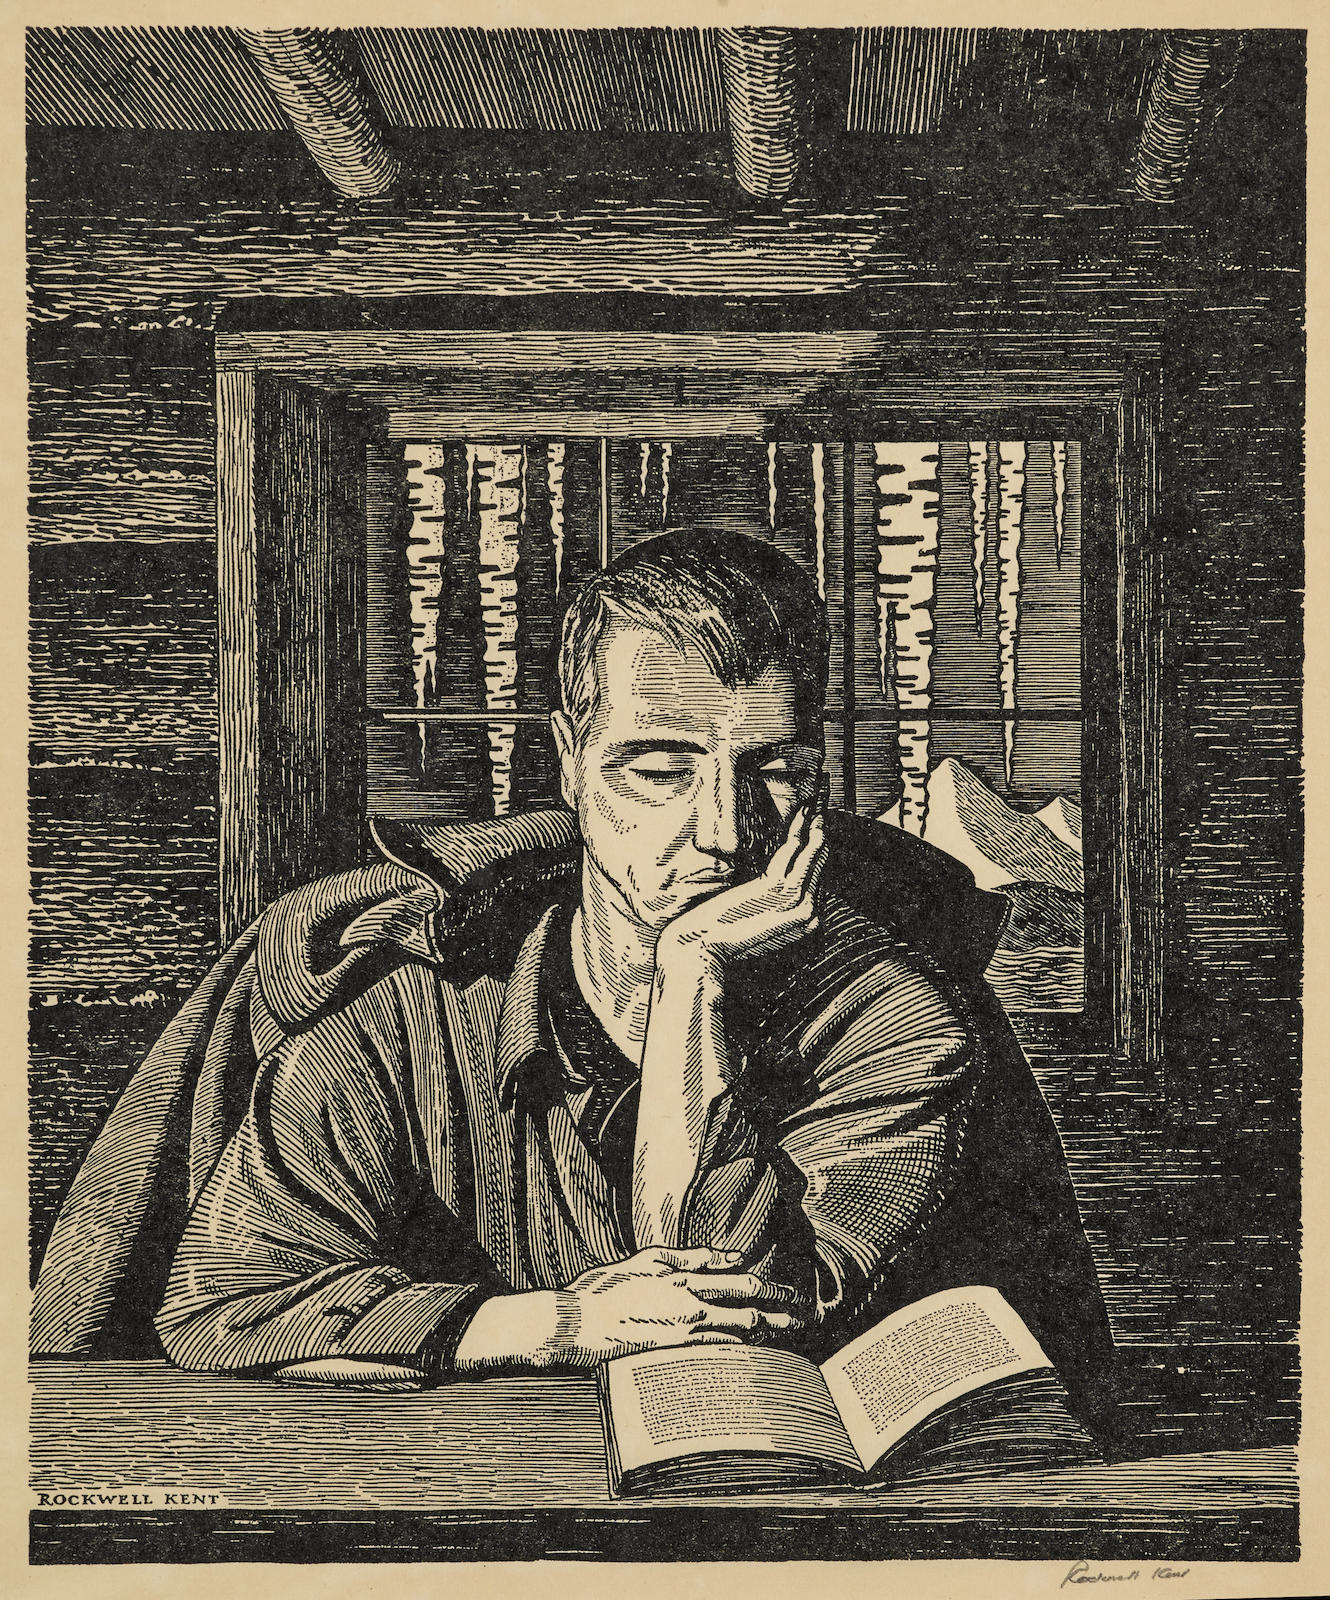 Rockwell Kent-After Rockwell Kent - Man Reading in a Cabin, 1920-1920